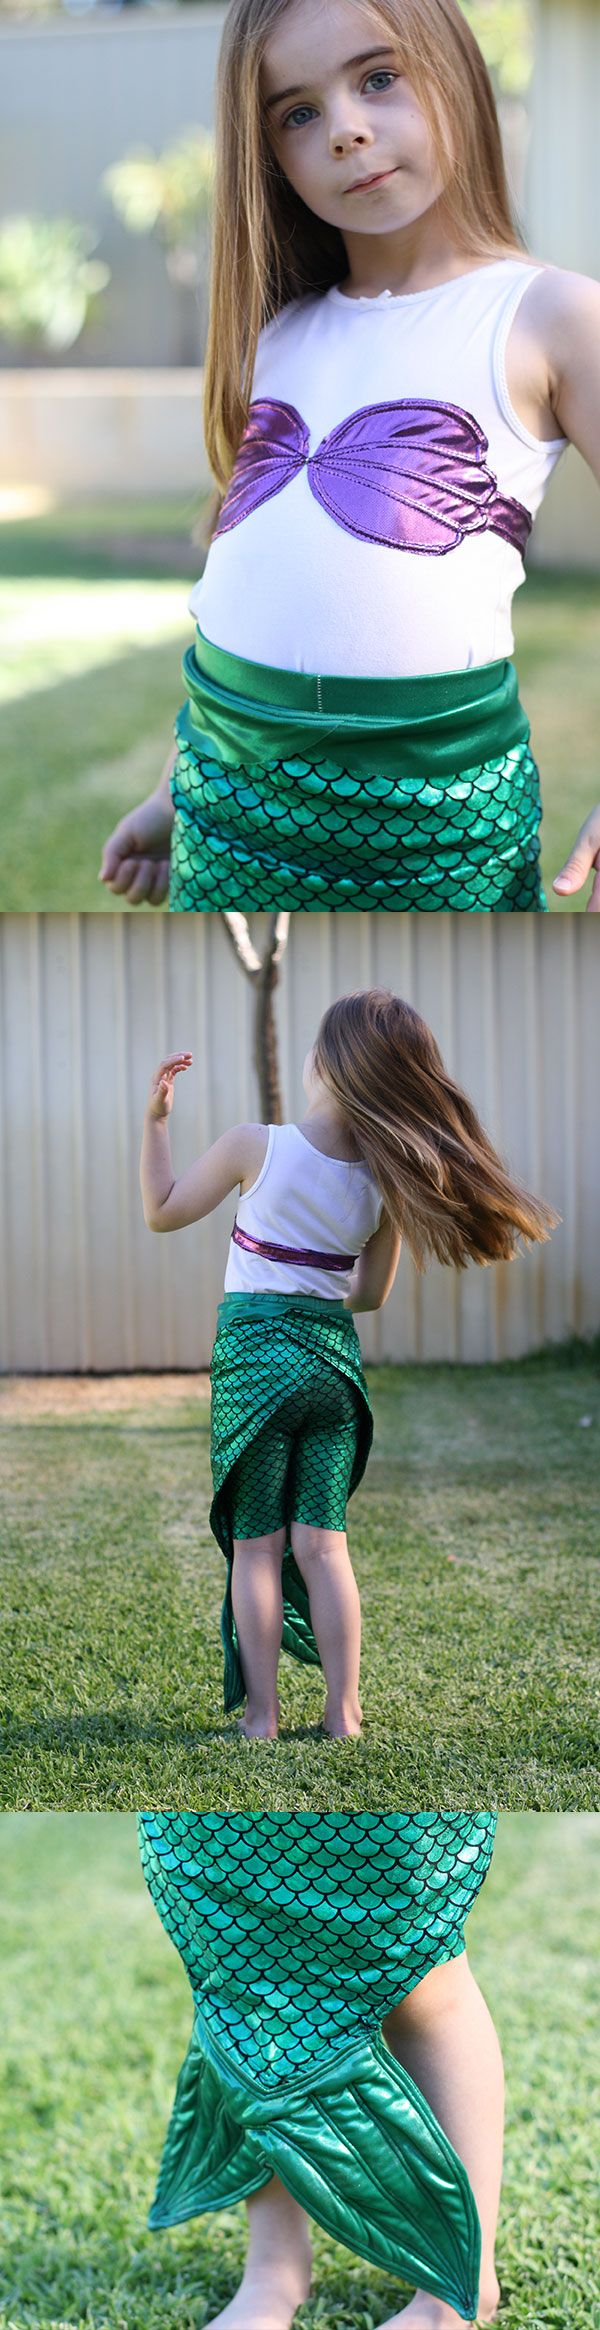 megan nielsen design diary: the little mermaid costume!